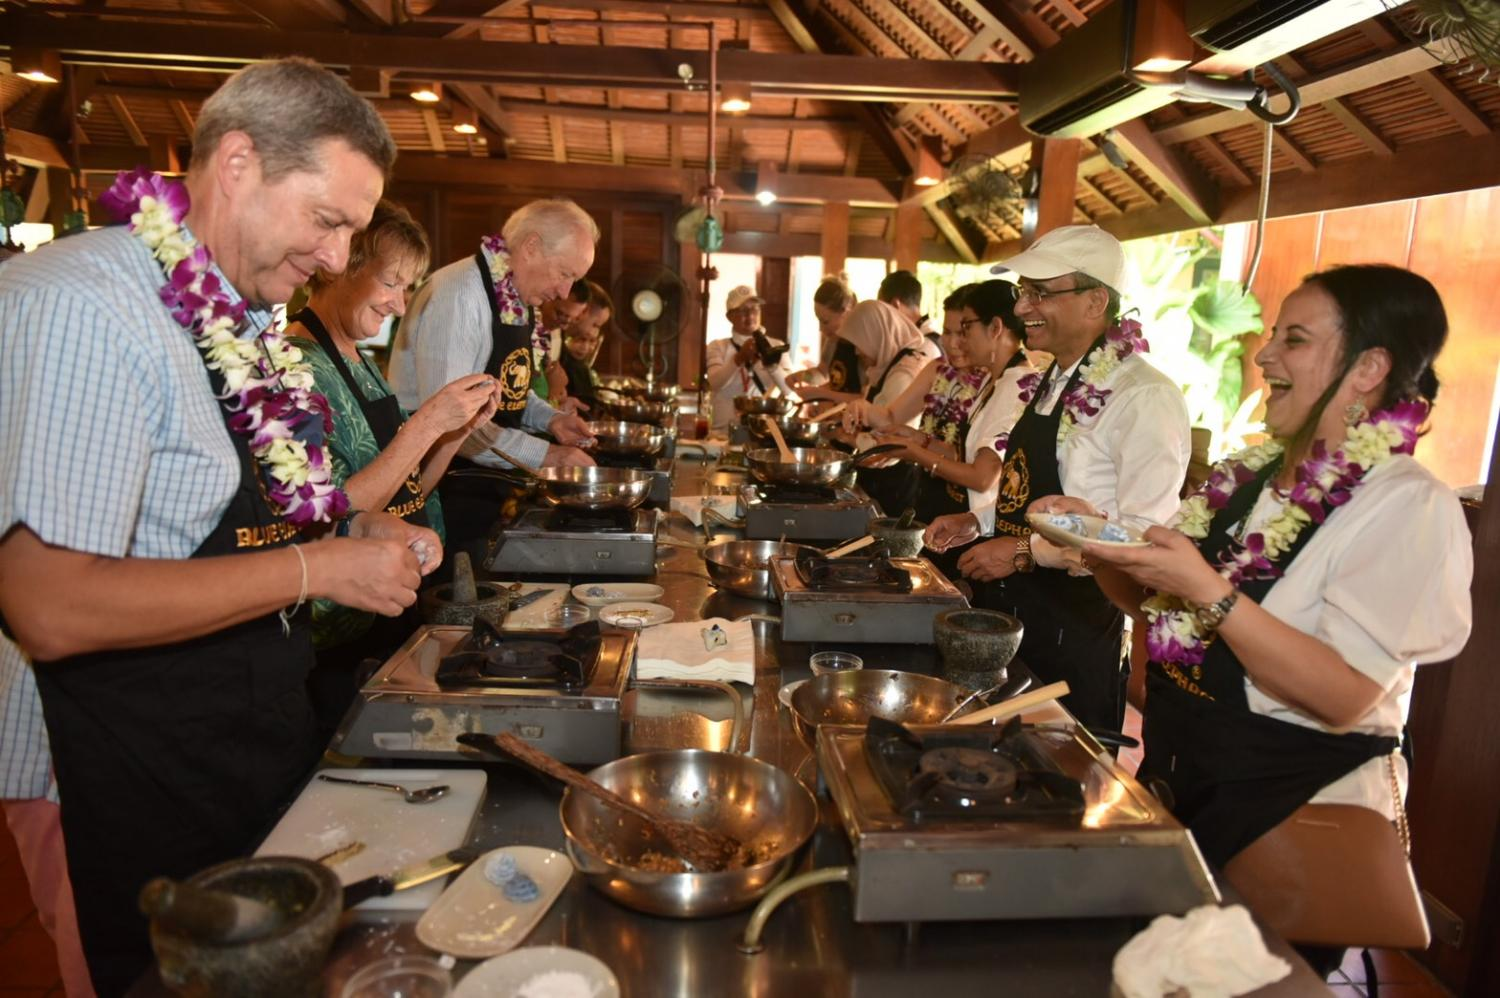 Diplomats and their spouses try their hands at cooking during a tour of  Phuket Old Town on Sunday. The envoys visited the island province in a campaign to revitalise the local tourism industry hit hard by the Covid-19 pandemic.(Photo by Achadthaya Chuenniran)